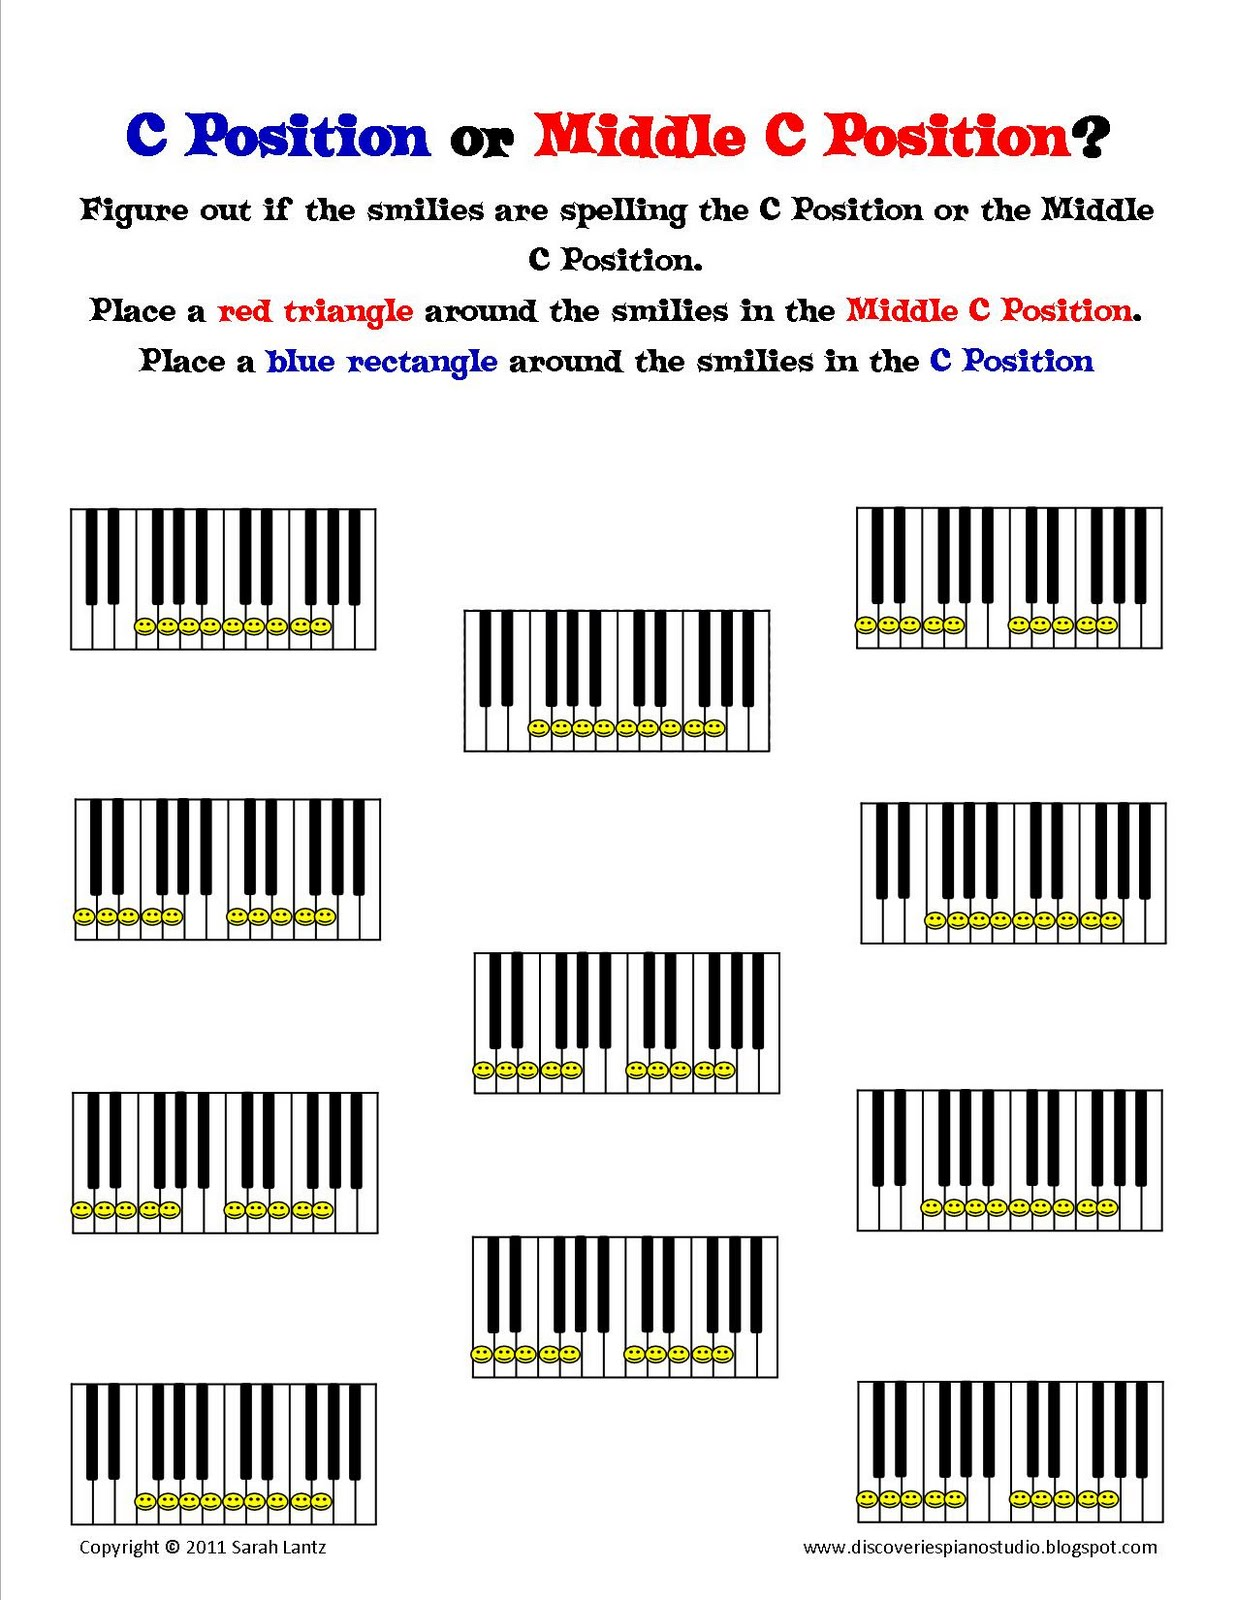 Discoveries piano studio new worksheets to help learn c and new worksheets to help learn c and middle c positions robcynllc Image collections